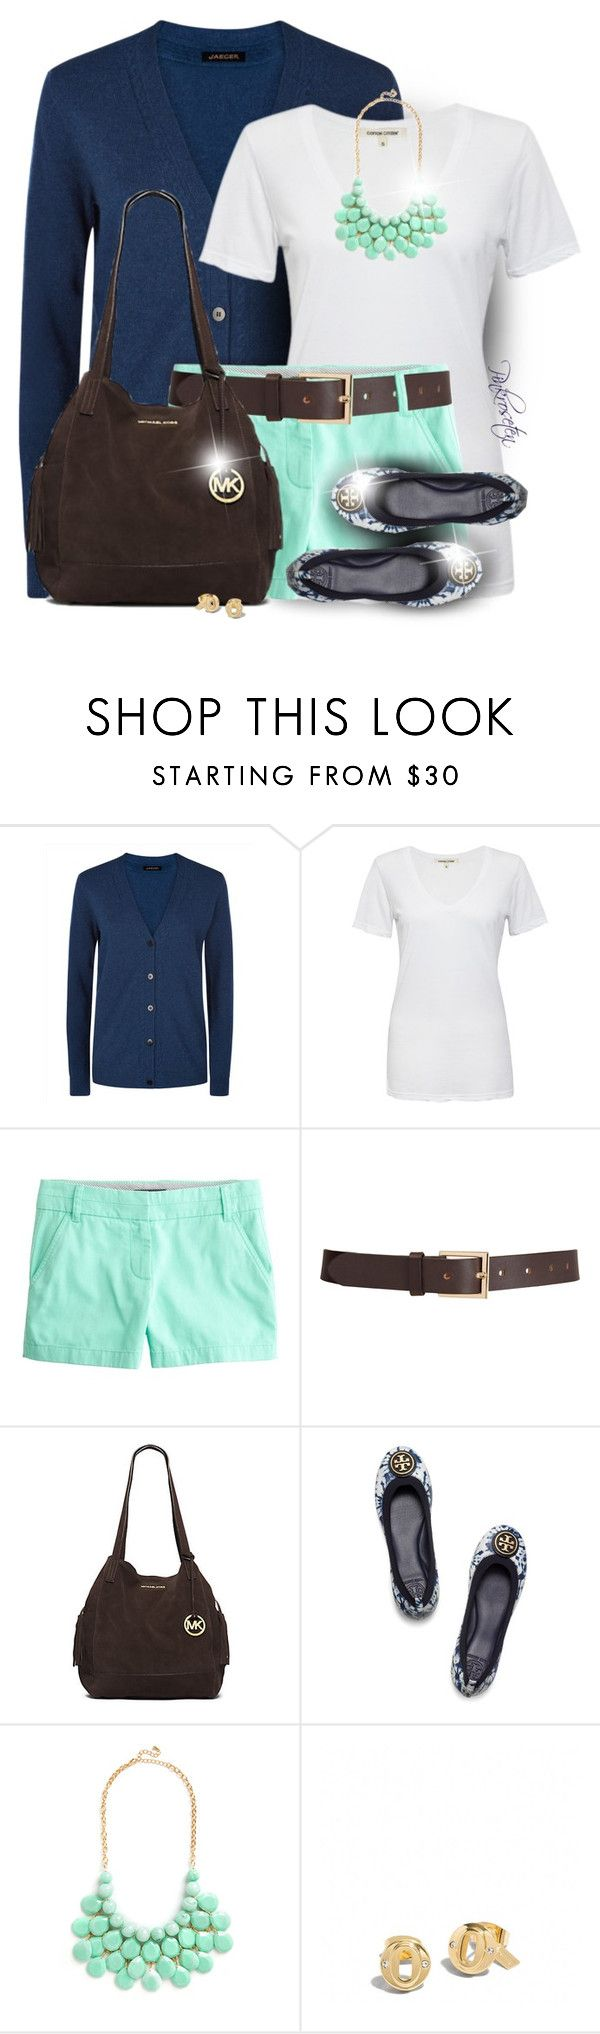 """""""Buttoned-Up Cardigan and Shorts"""" by pinkroseten ❤ liked on Polyvore featuring Jaeger, Cotton Citizen, J.Crew, Barneys New York, Michael Kors, Tory Burch and Coach"""